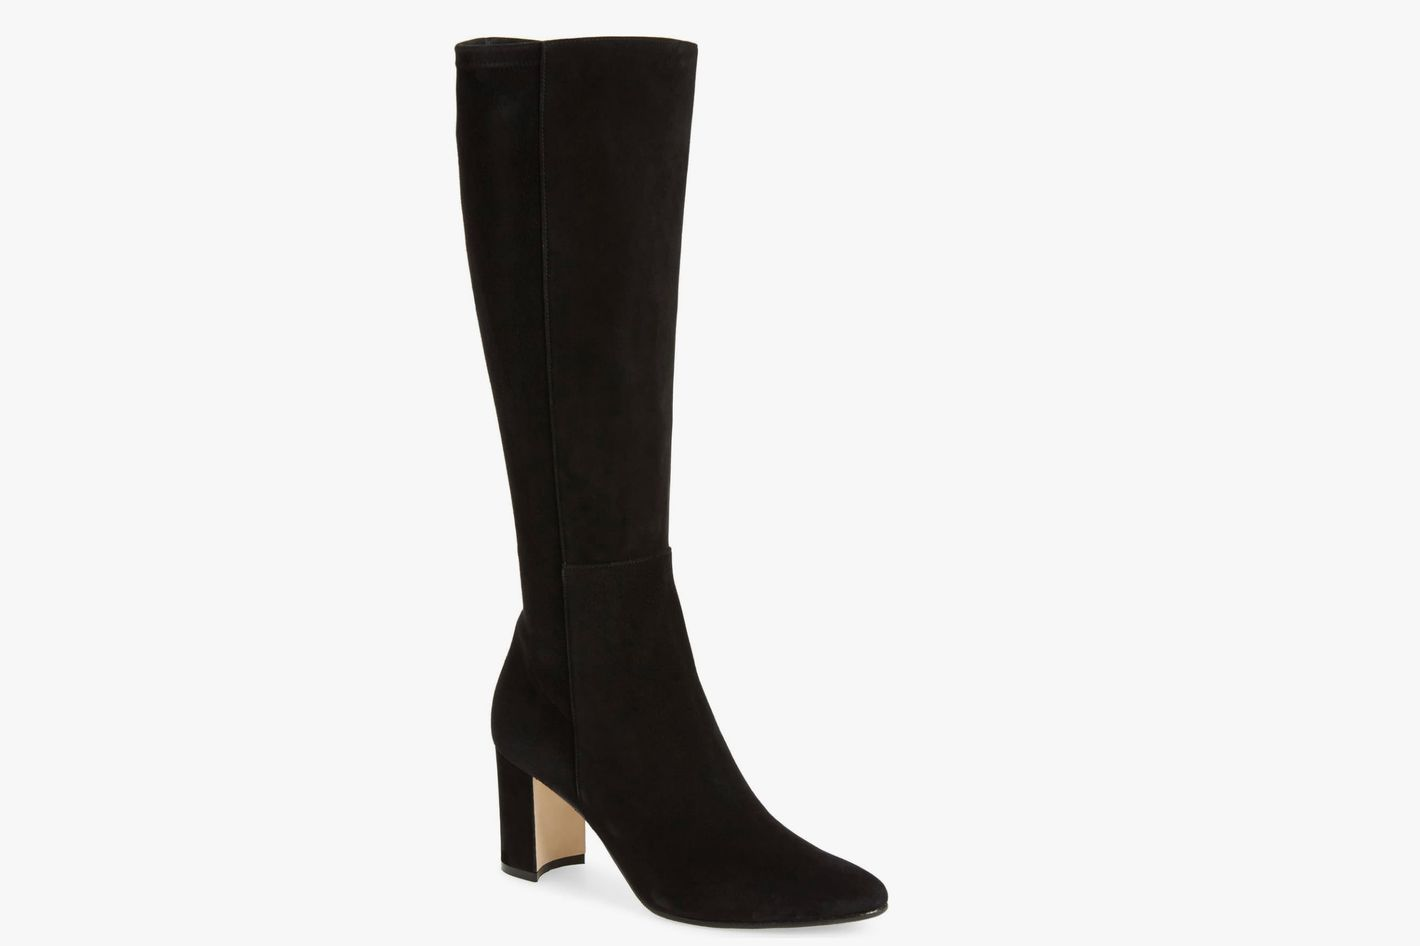 Manolo Blahnik Pita Knee High Boot